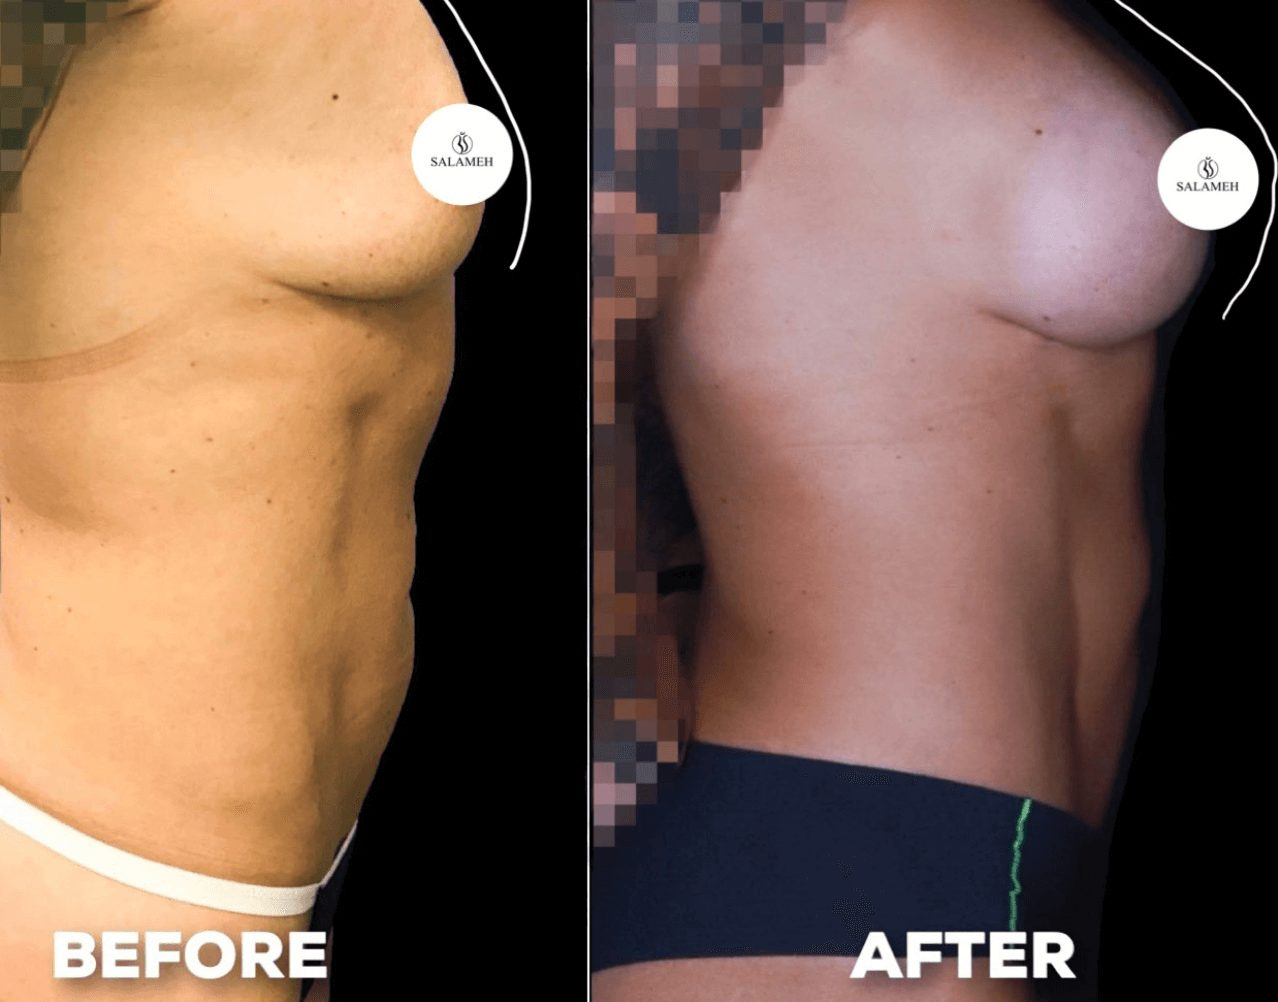 Before and after side view of breast augmentation